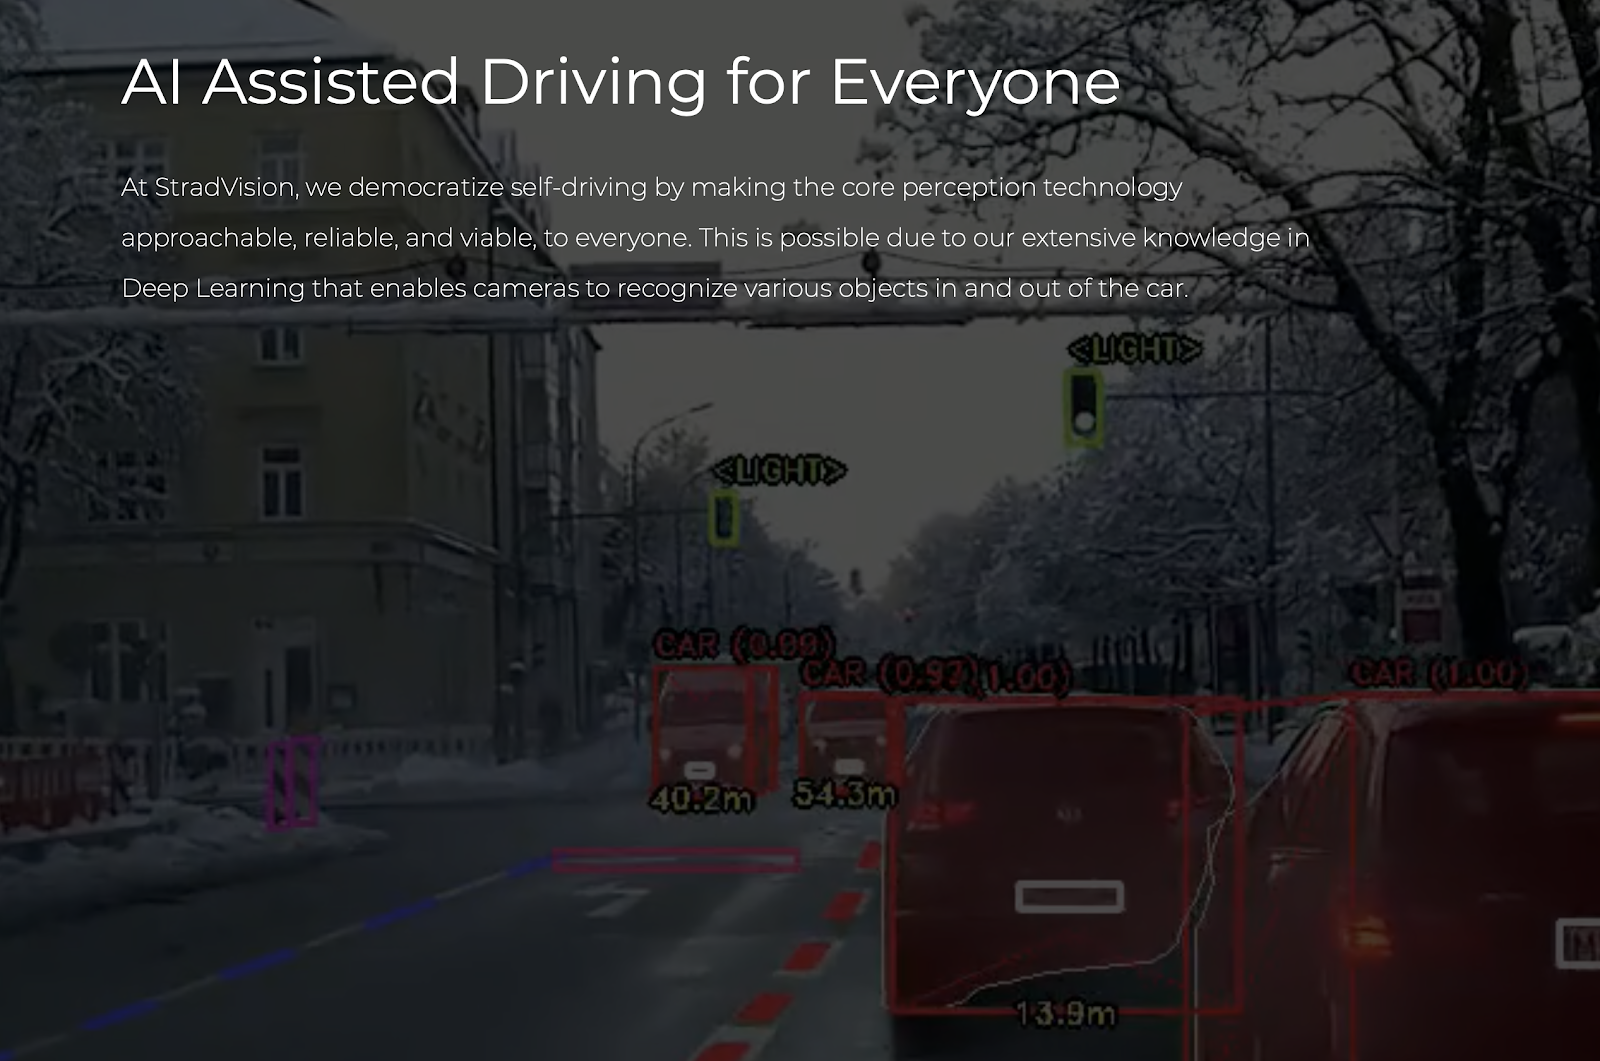 StradVision - AI Assisted Driving For everyone